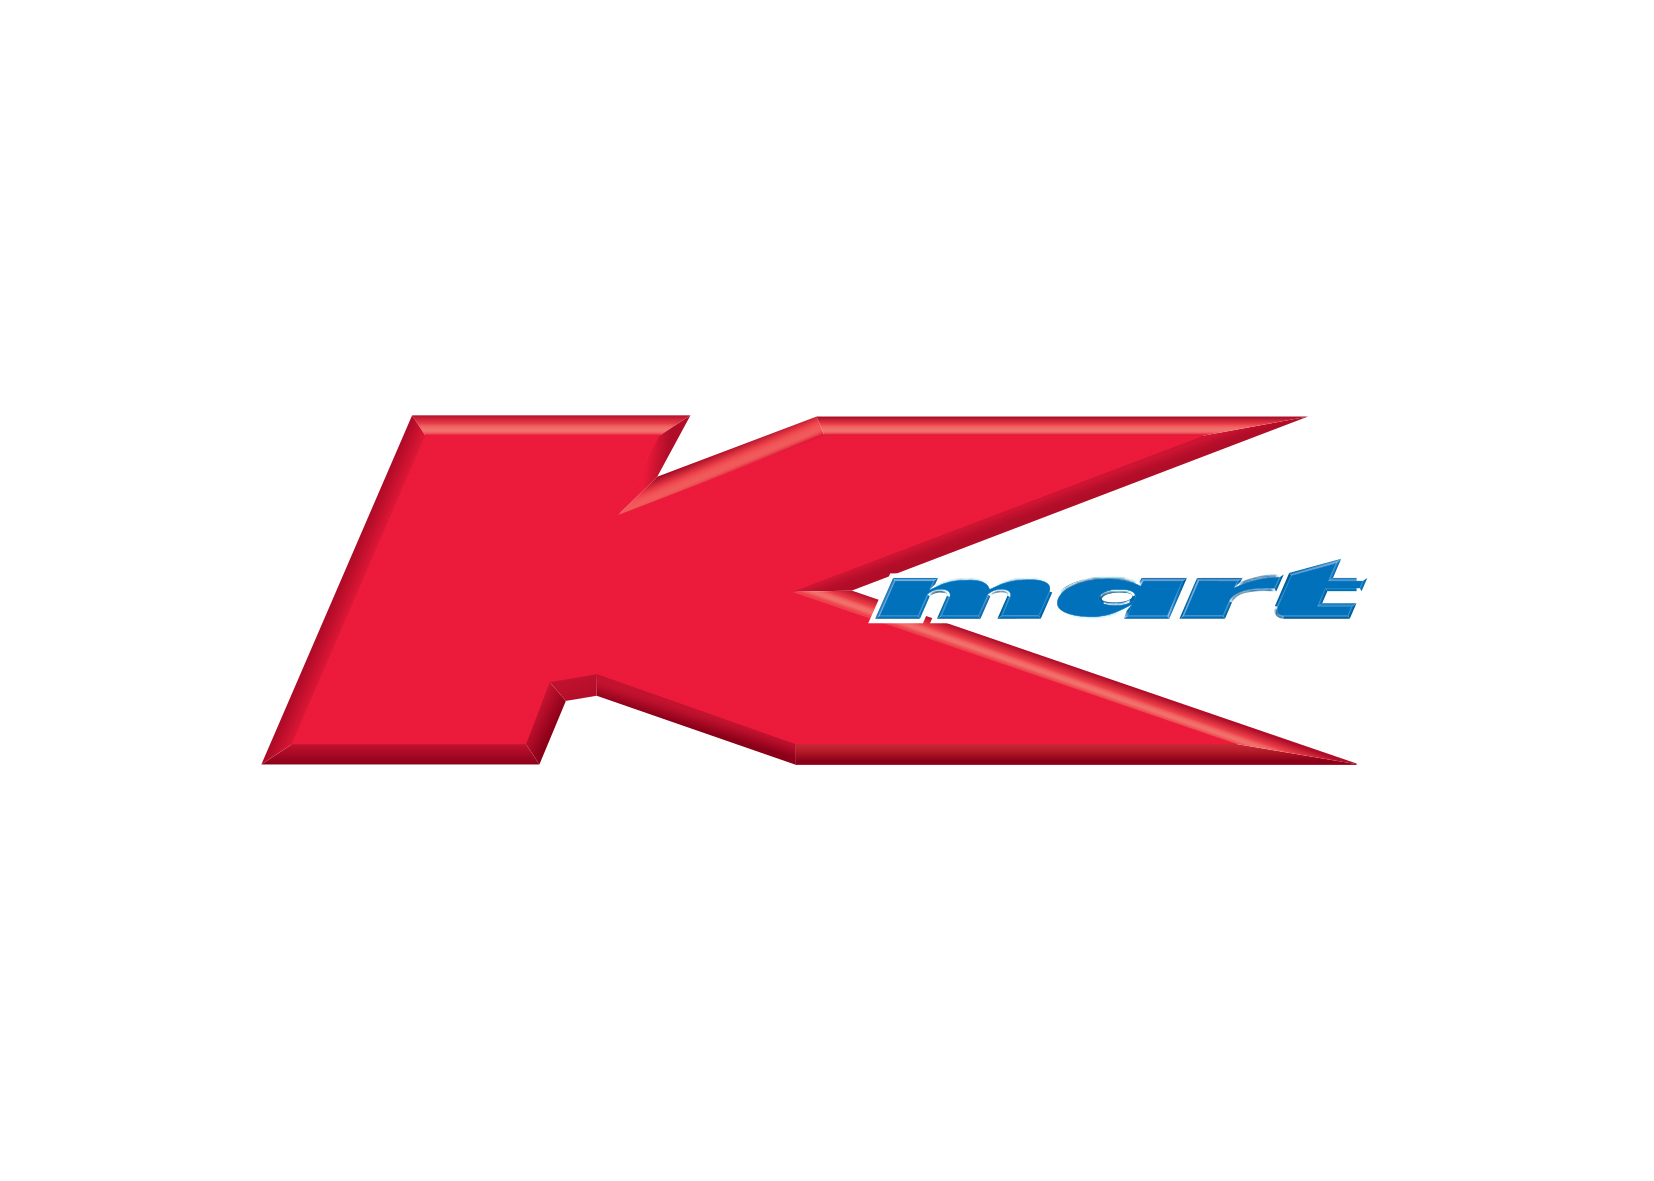 highway brands_0011_kmart.jpg